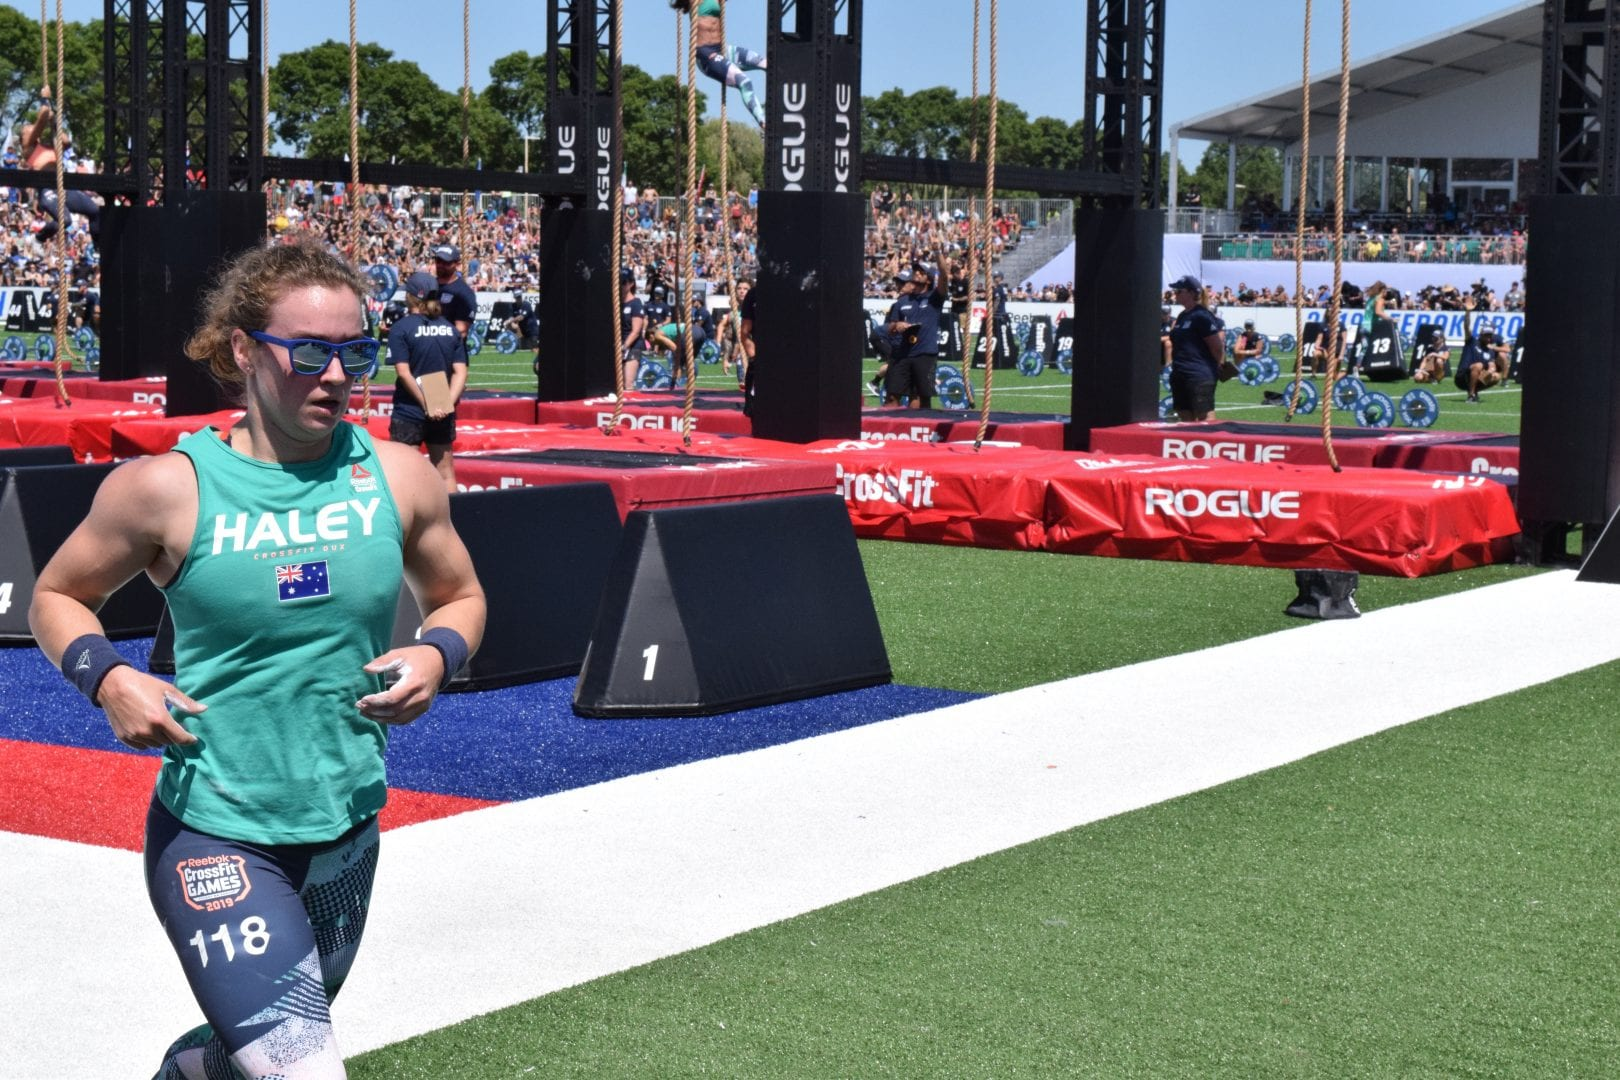 Courtney Haley completes a lap between rounds of legless rope climbs at the 2019 CrossFit Games.